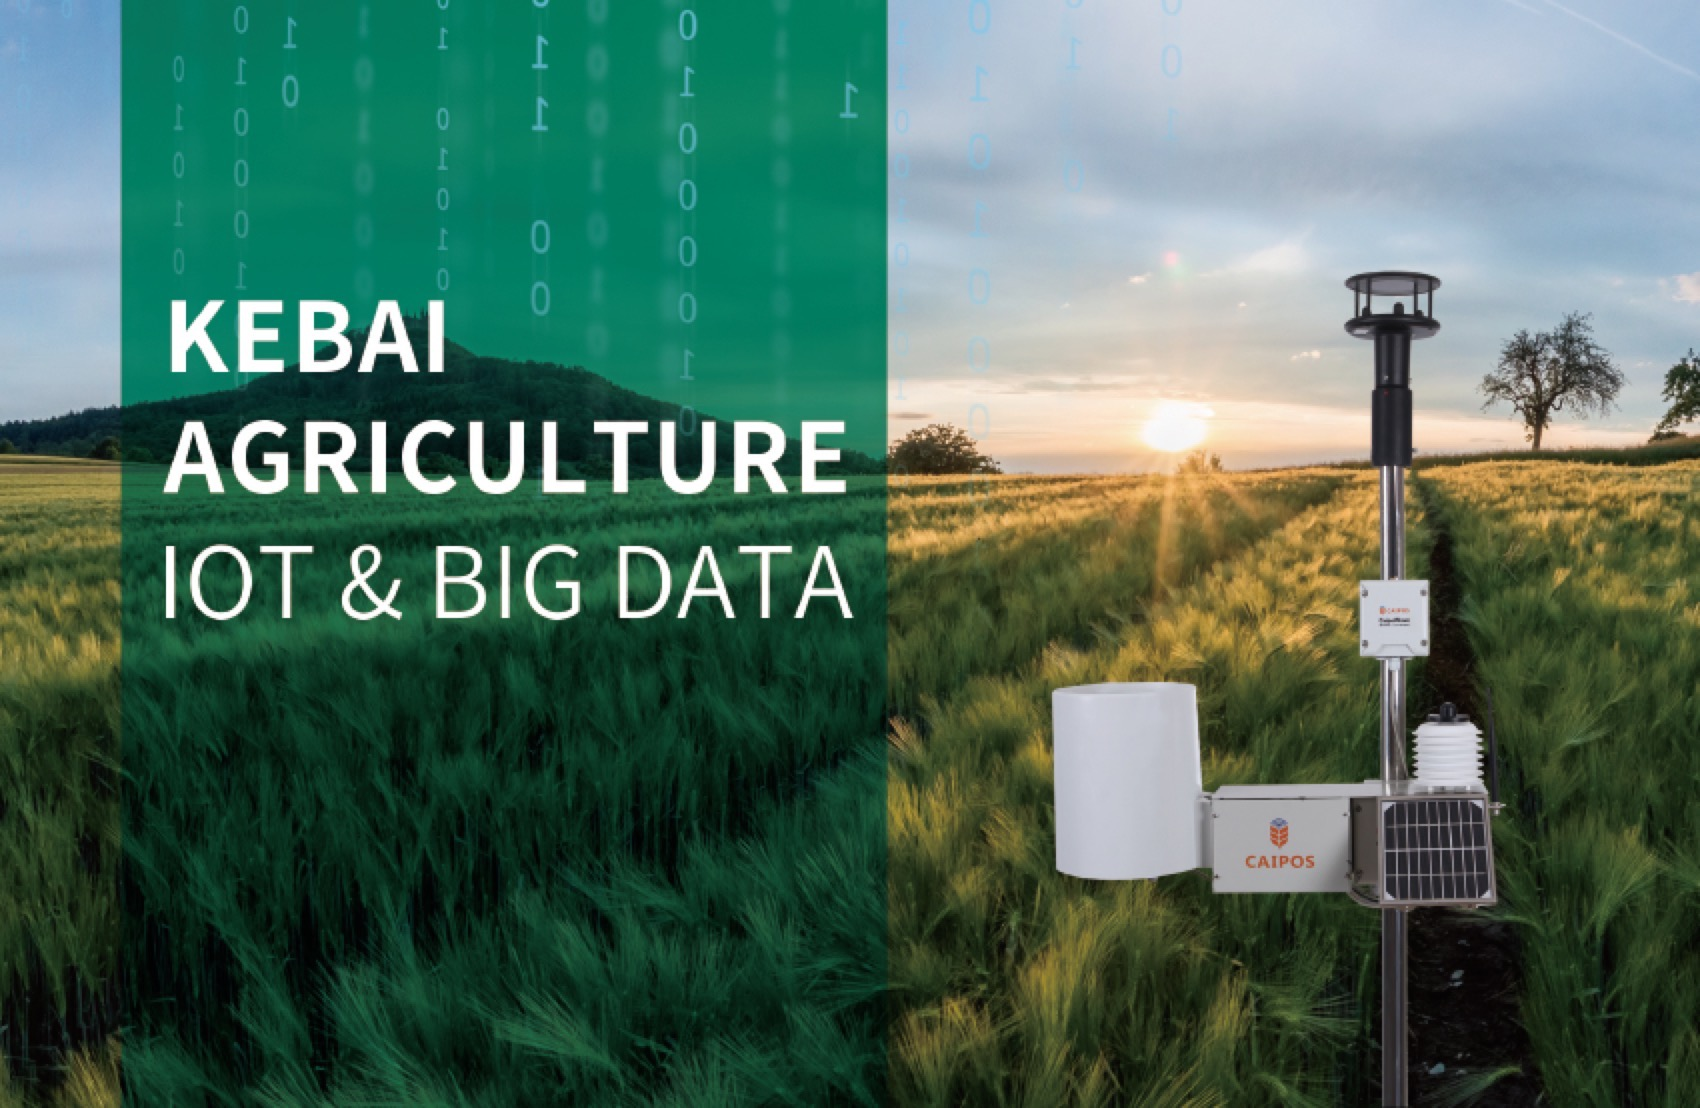 KEBAI AGRICULUTURE IOT&BIG DATA